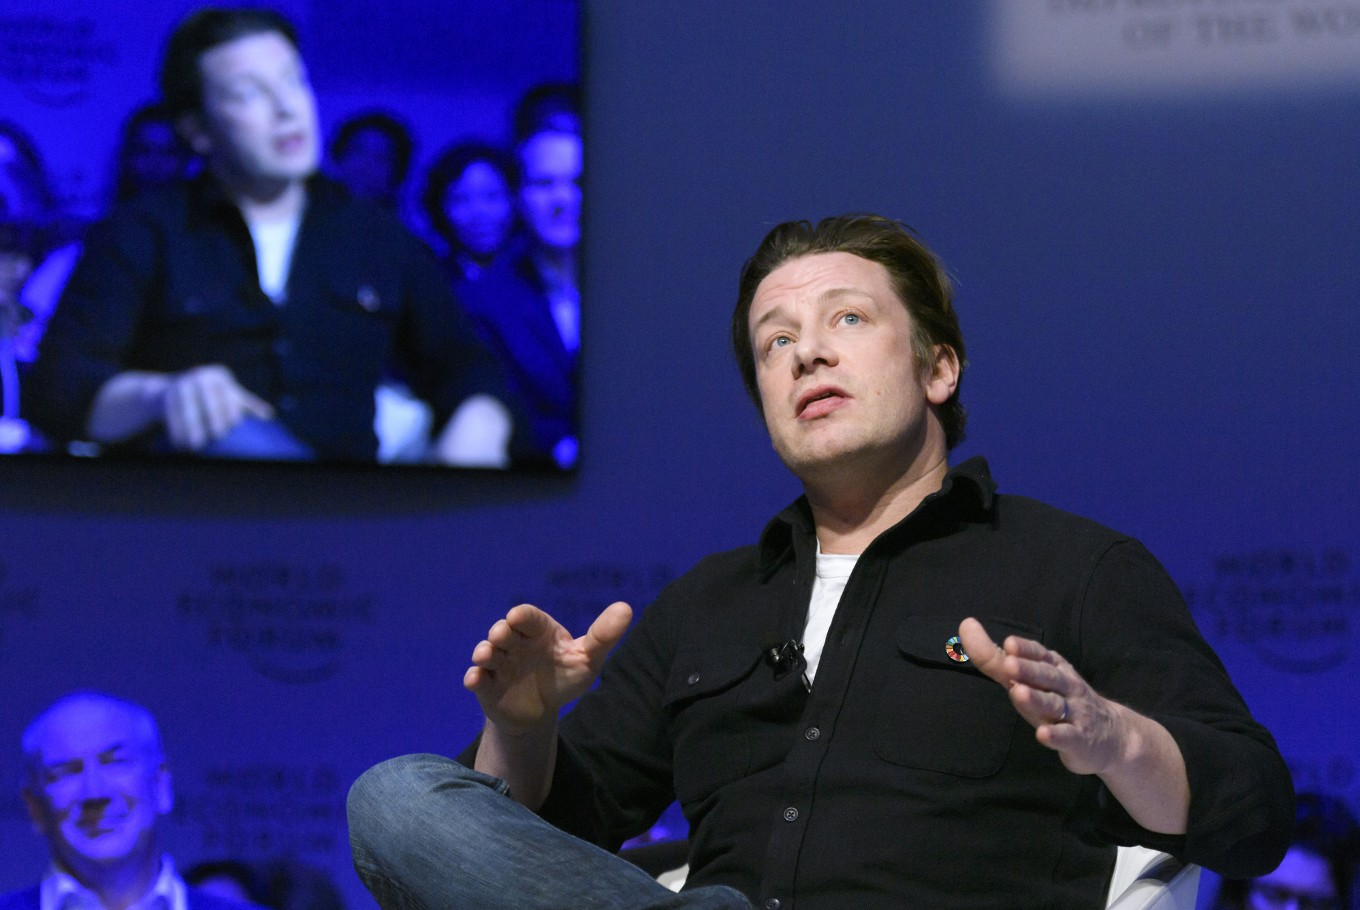 Jamie Oliver's United Kingdom restaurant chain collapses, Australian branches unaffected - Italianmedia